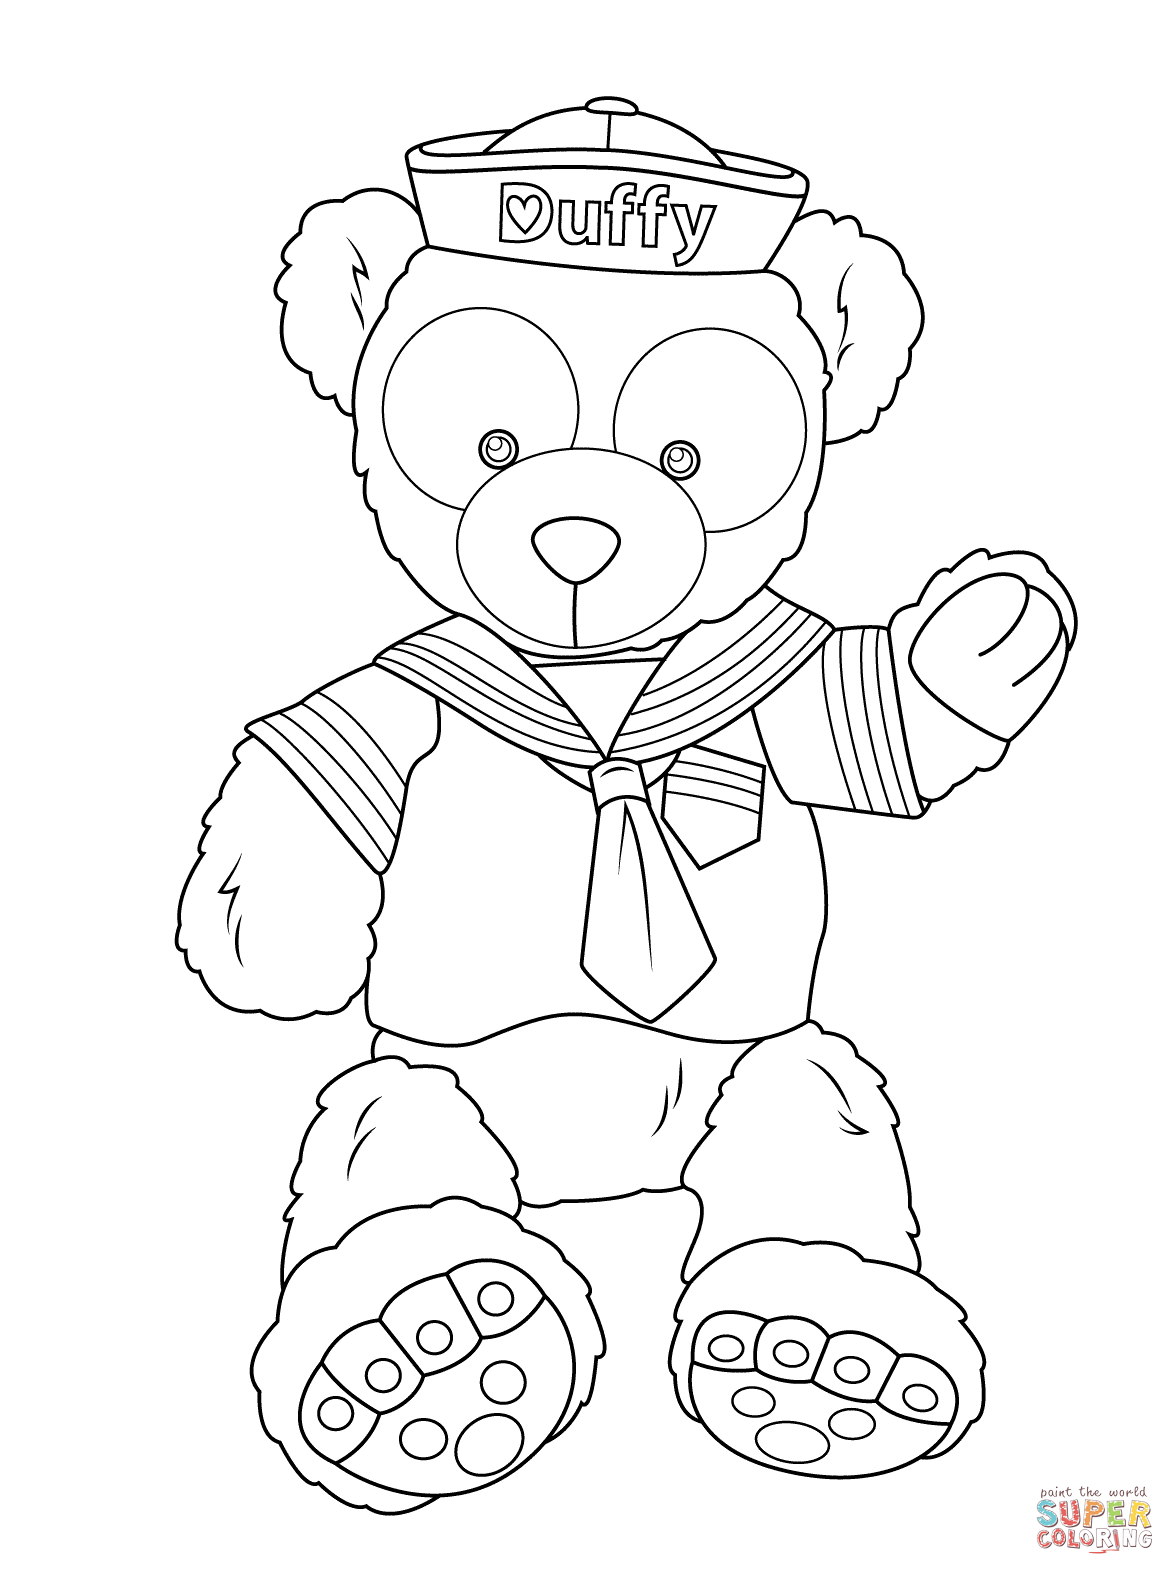 1175x1575 Duffy The Disney Bear Coloring Page Free Printable Coloring